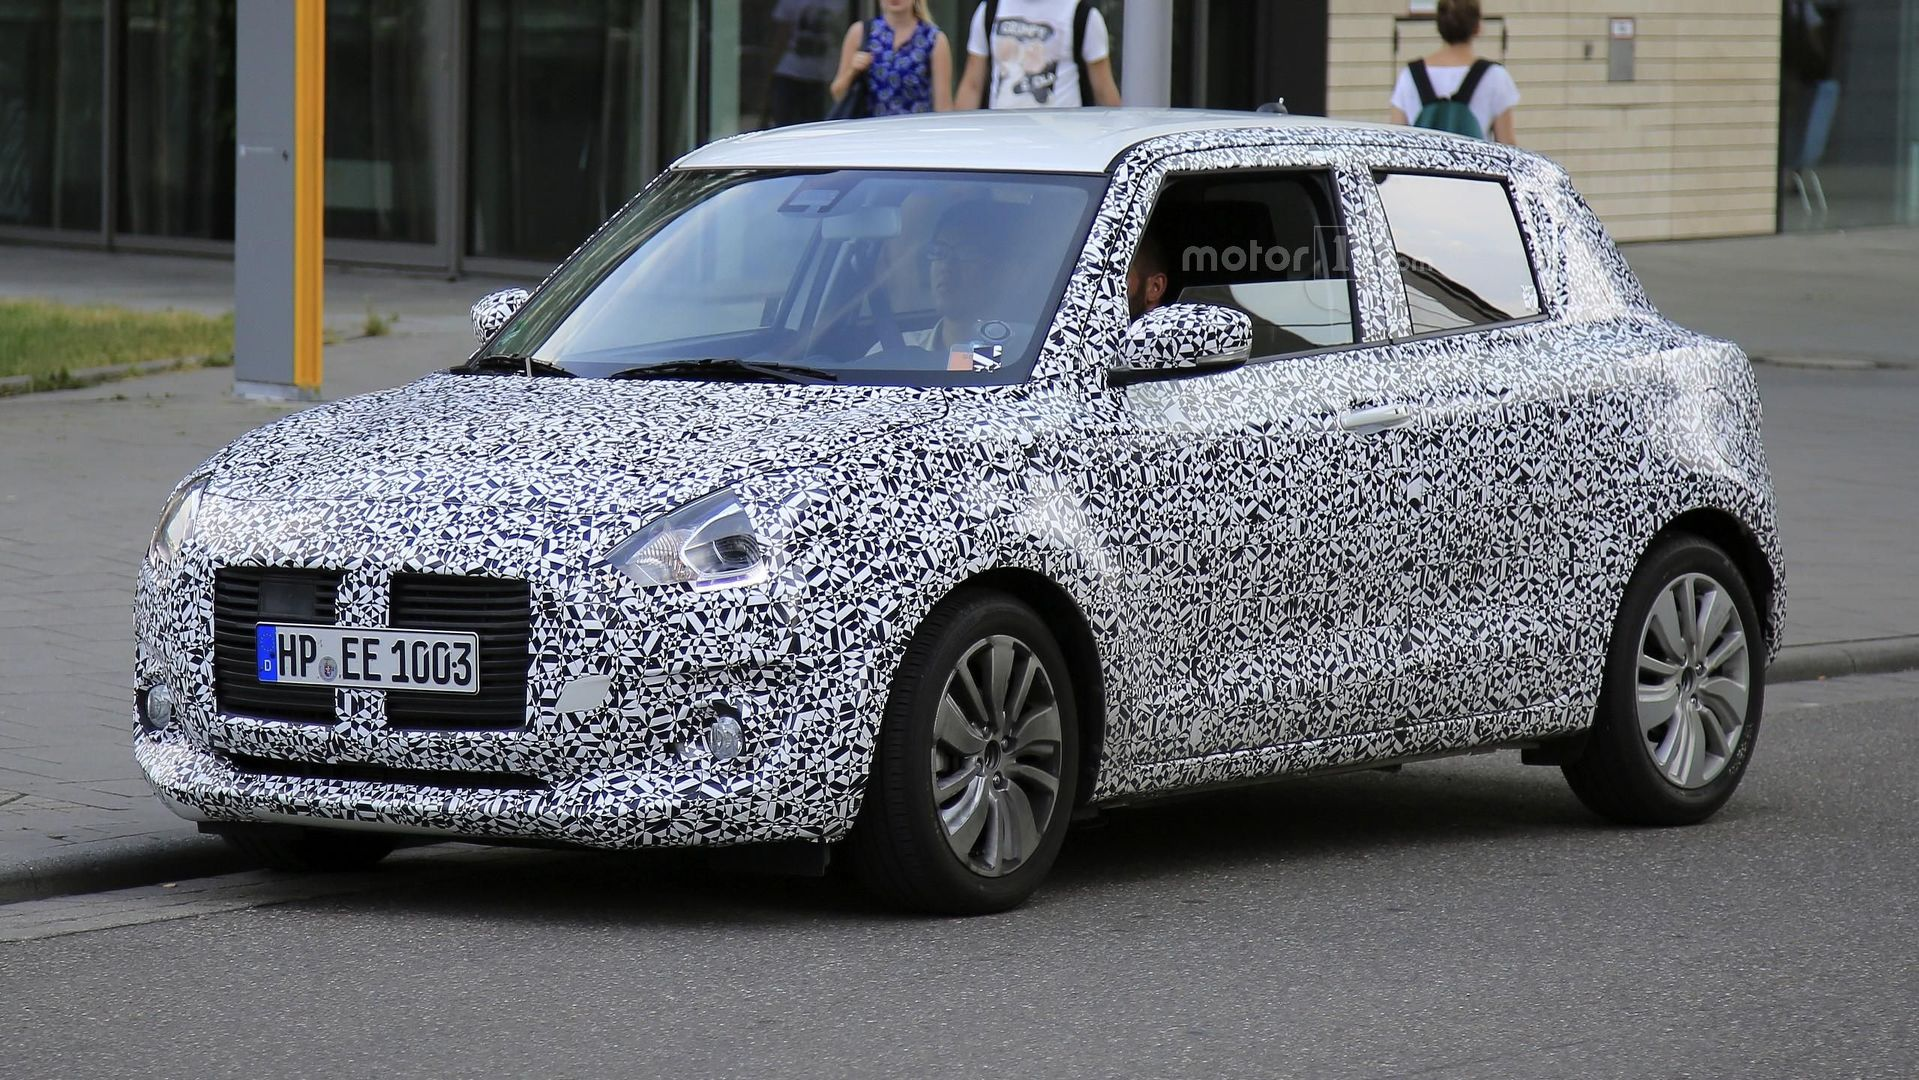 2017-suzuki-swift-spy-photo.jpg